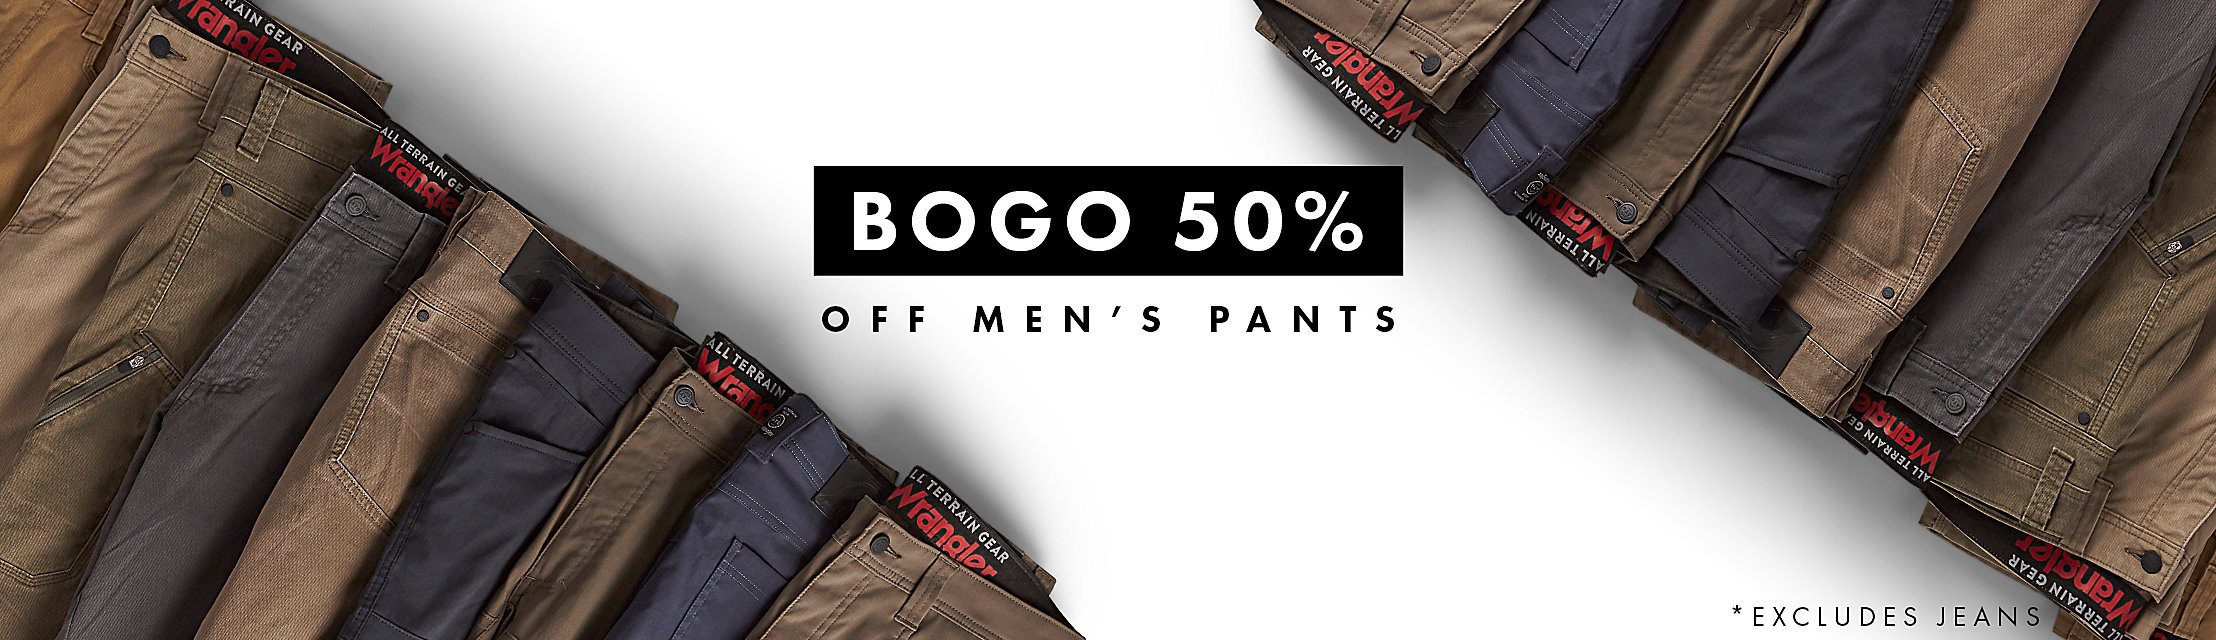 Buy One, Get One 50% Off Men's Pants